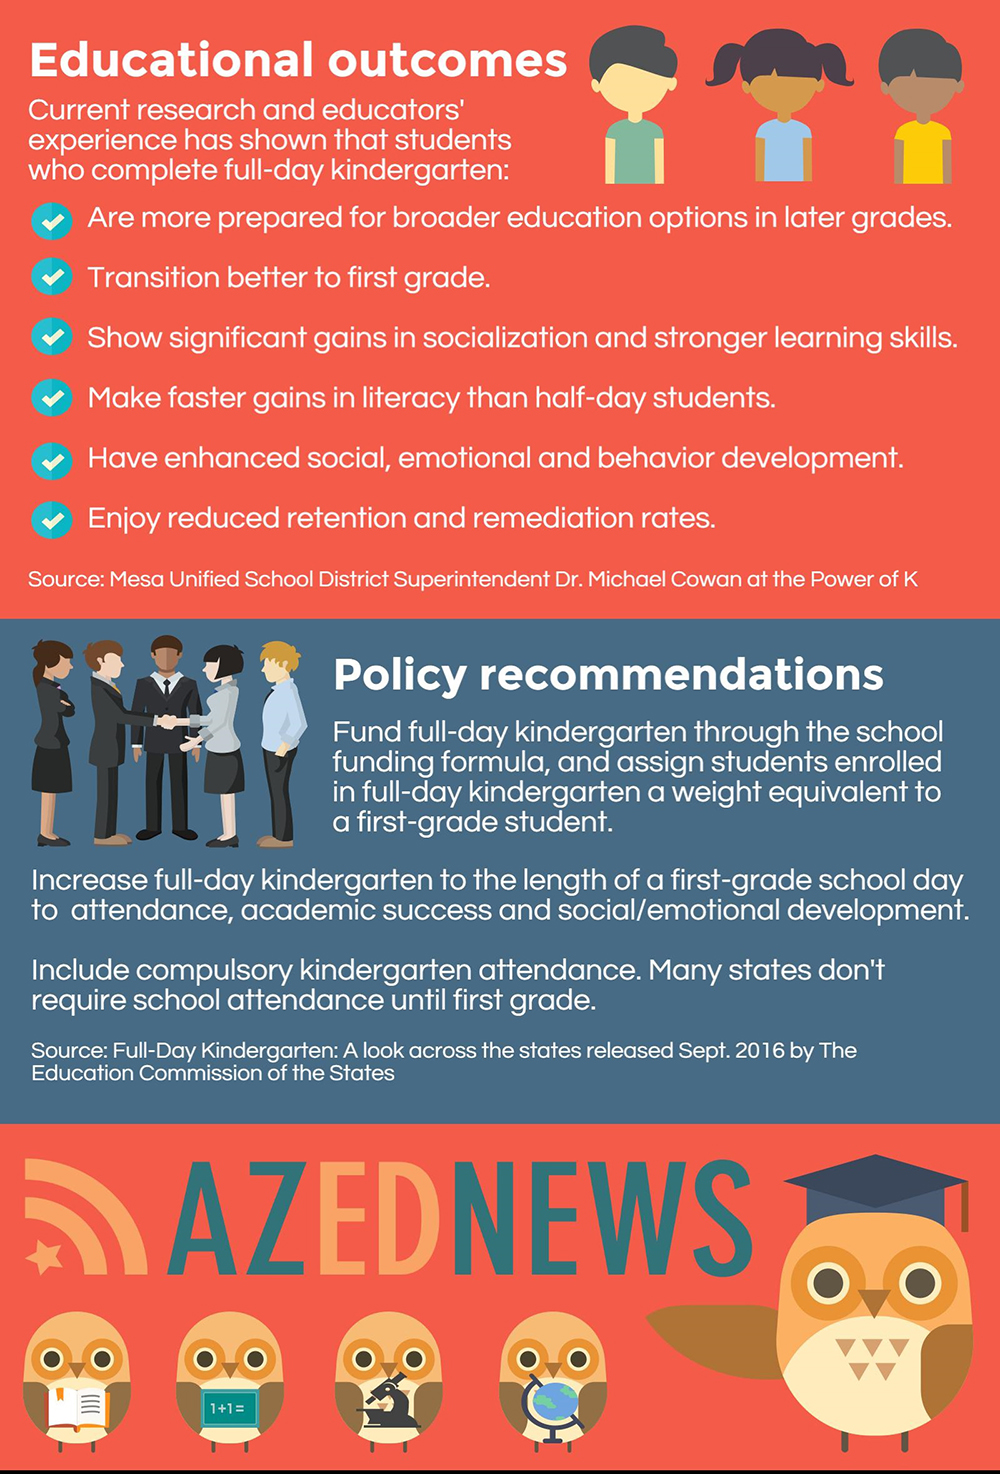 Leaders say full-day kindergarten is key to early literacy (+ Infographic) AZEdNewsKindergartenOutcomesAndPolicyInfographic